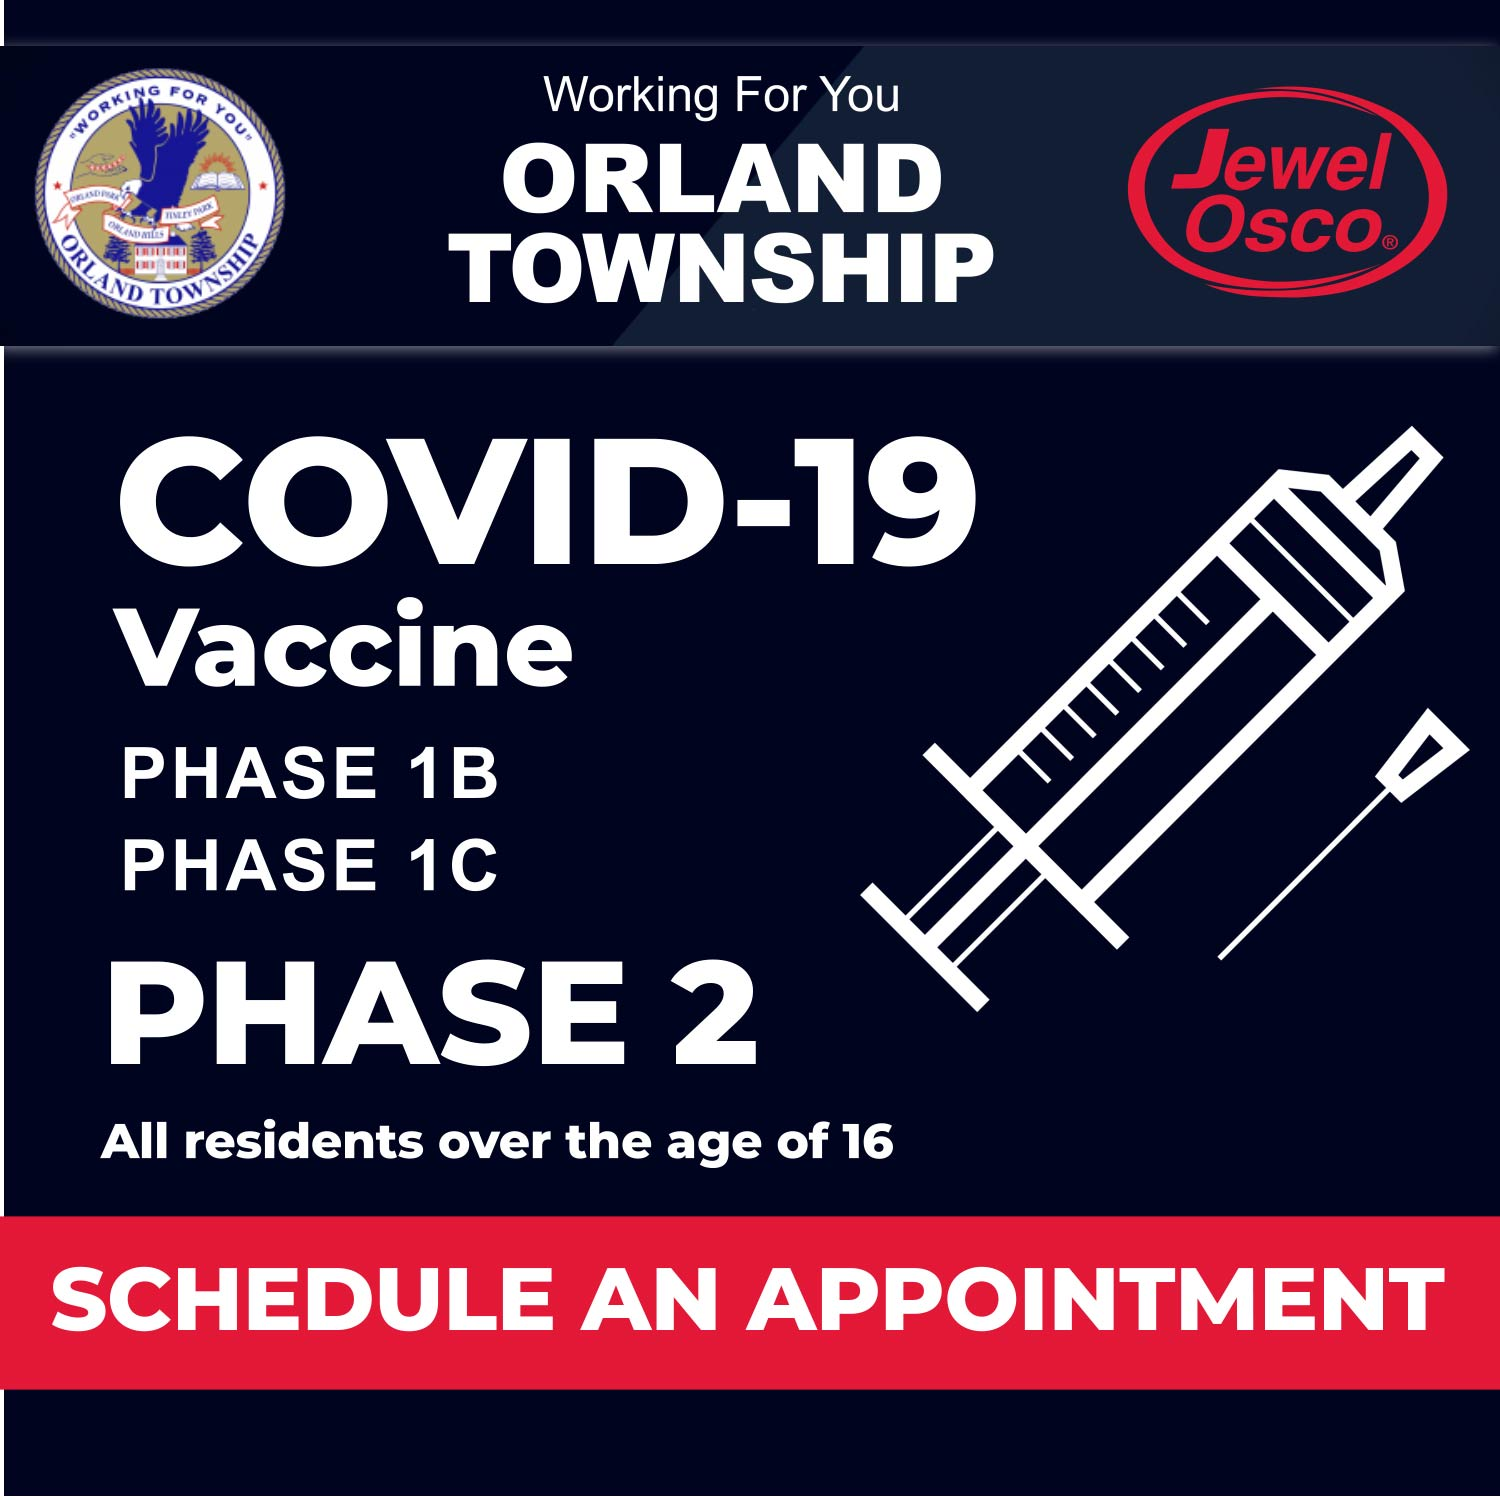 COVID-19 VACCINE EVENT Orland Township Working For You